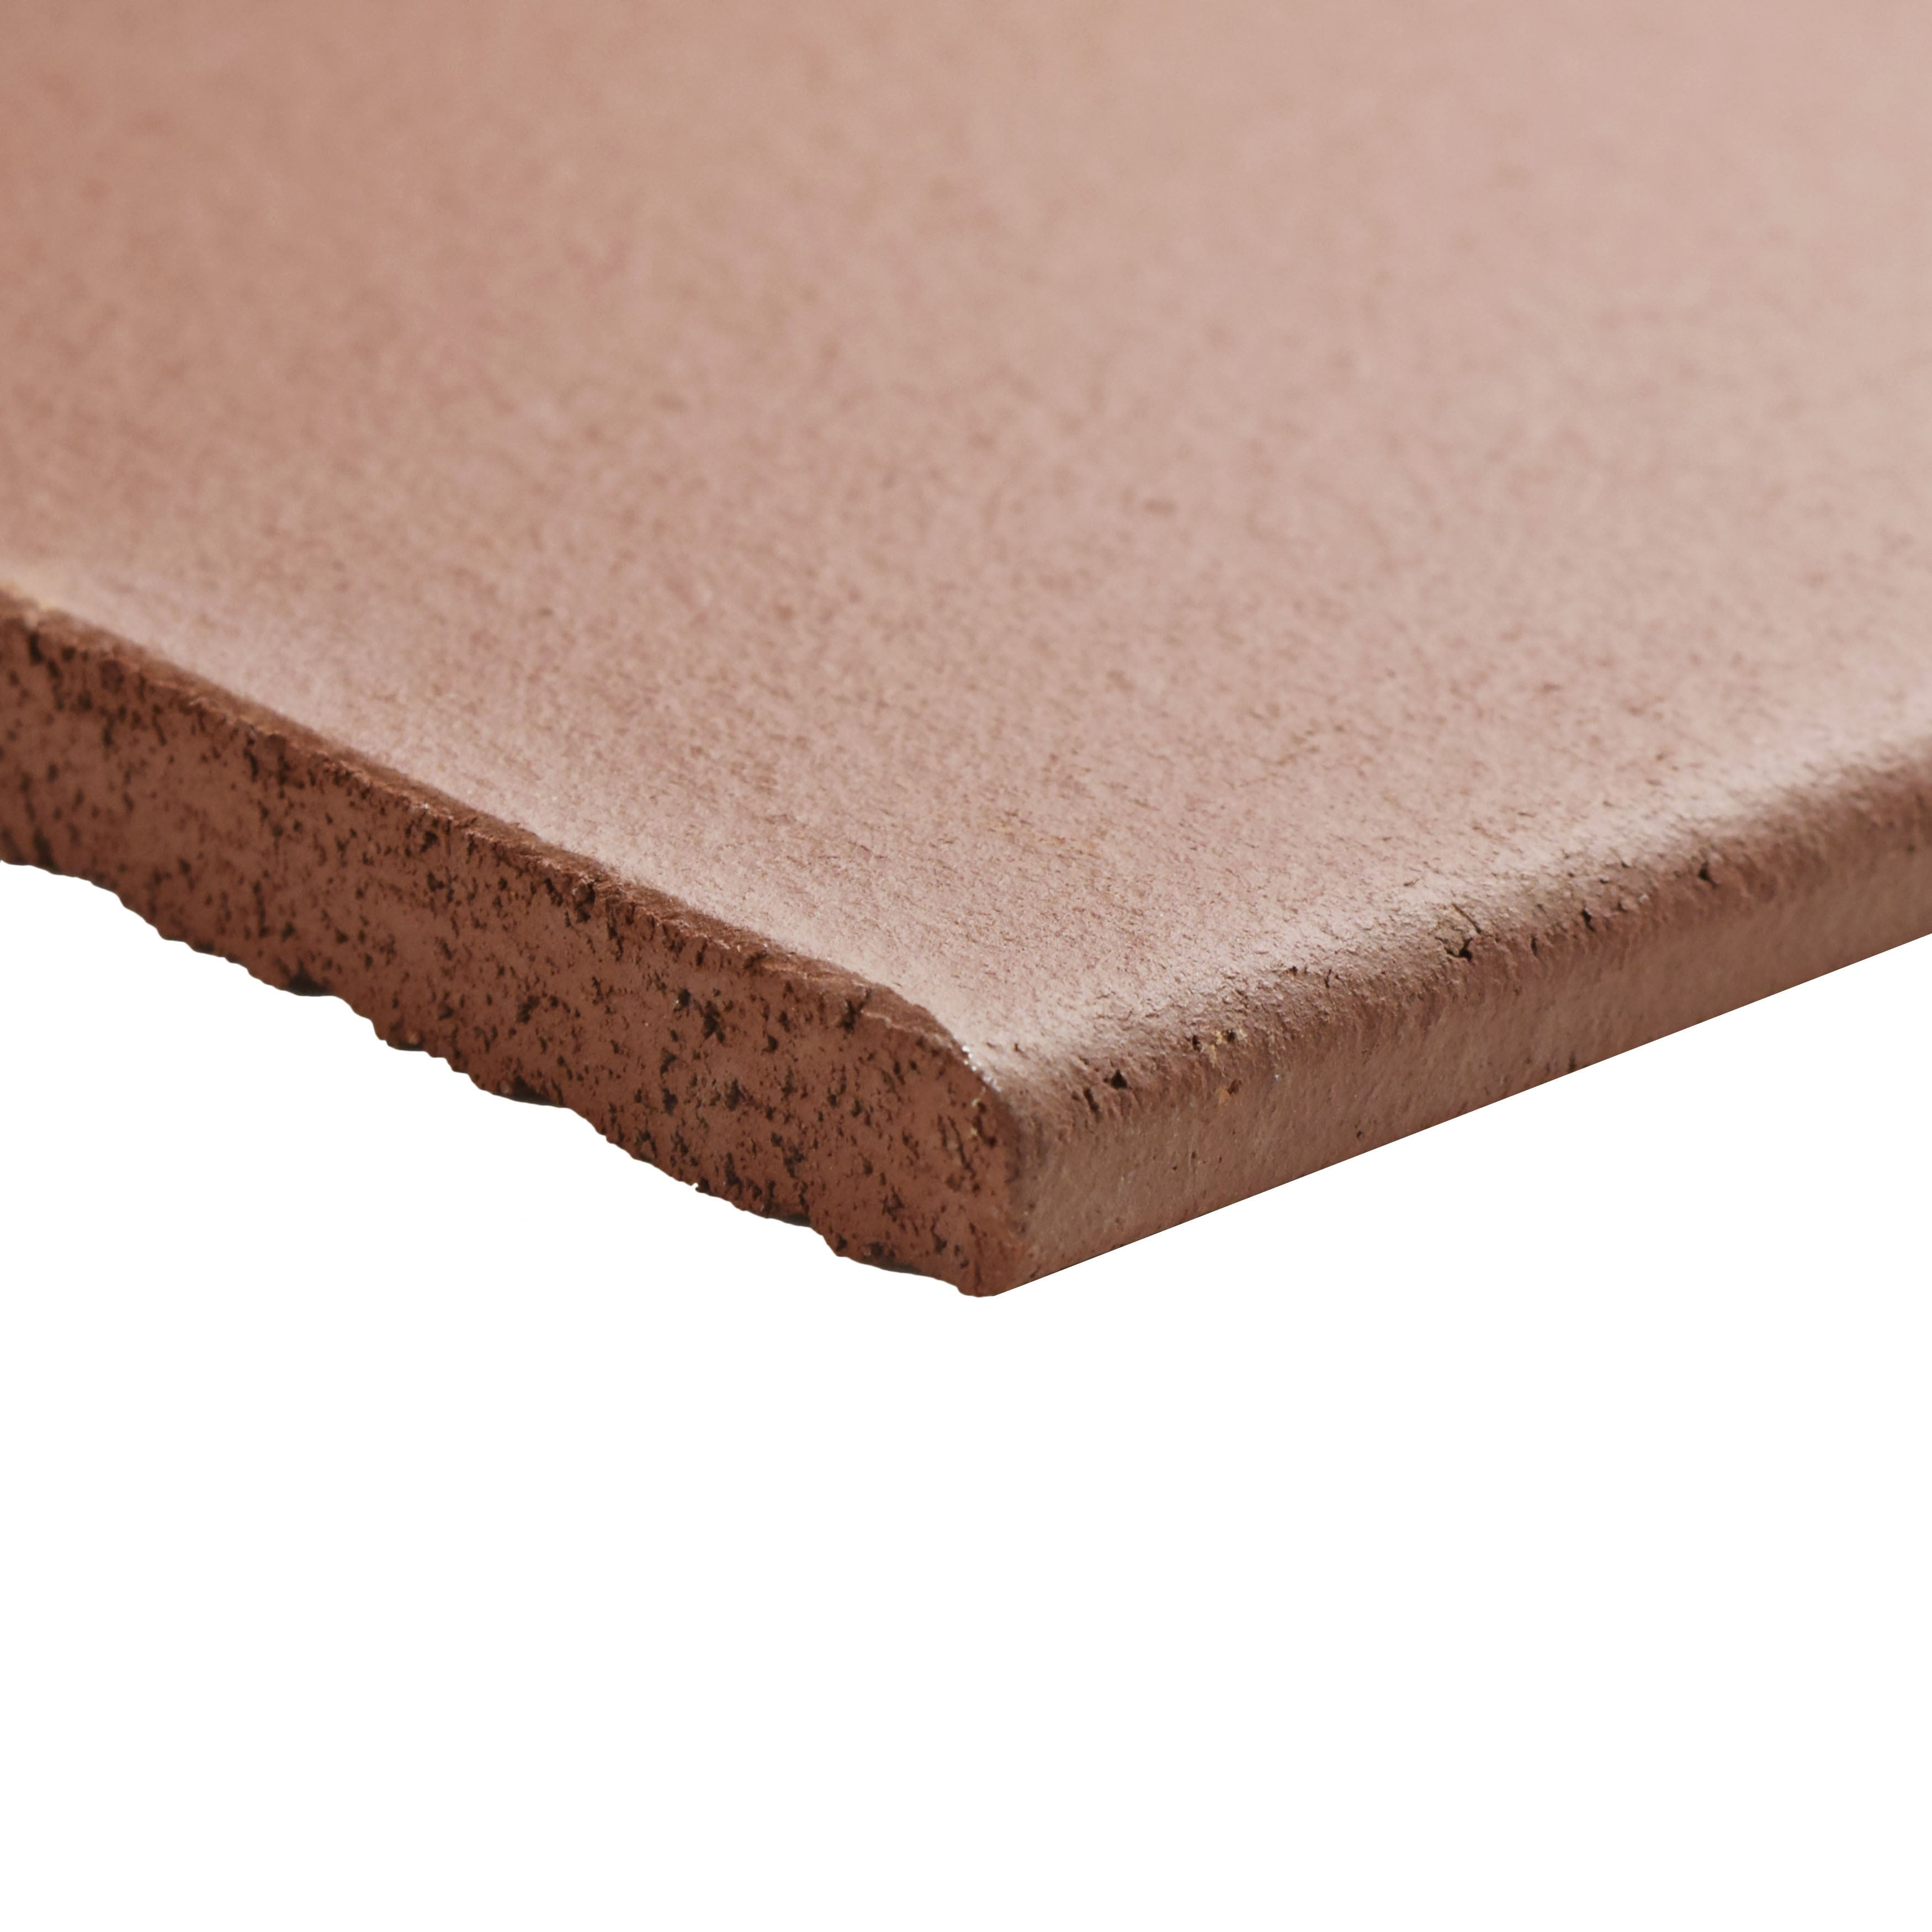 Somertile 5 875x5 875 Inch Clinker Edge Red Quarry Bullnose Floor And Wall Trim Tile Free Shipping On Orders Over 45 13094639